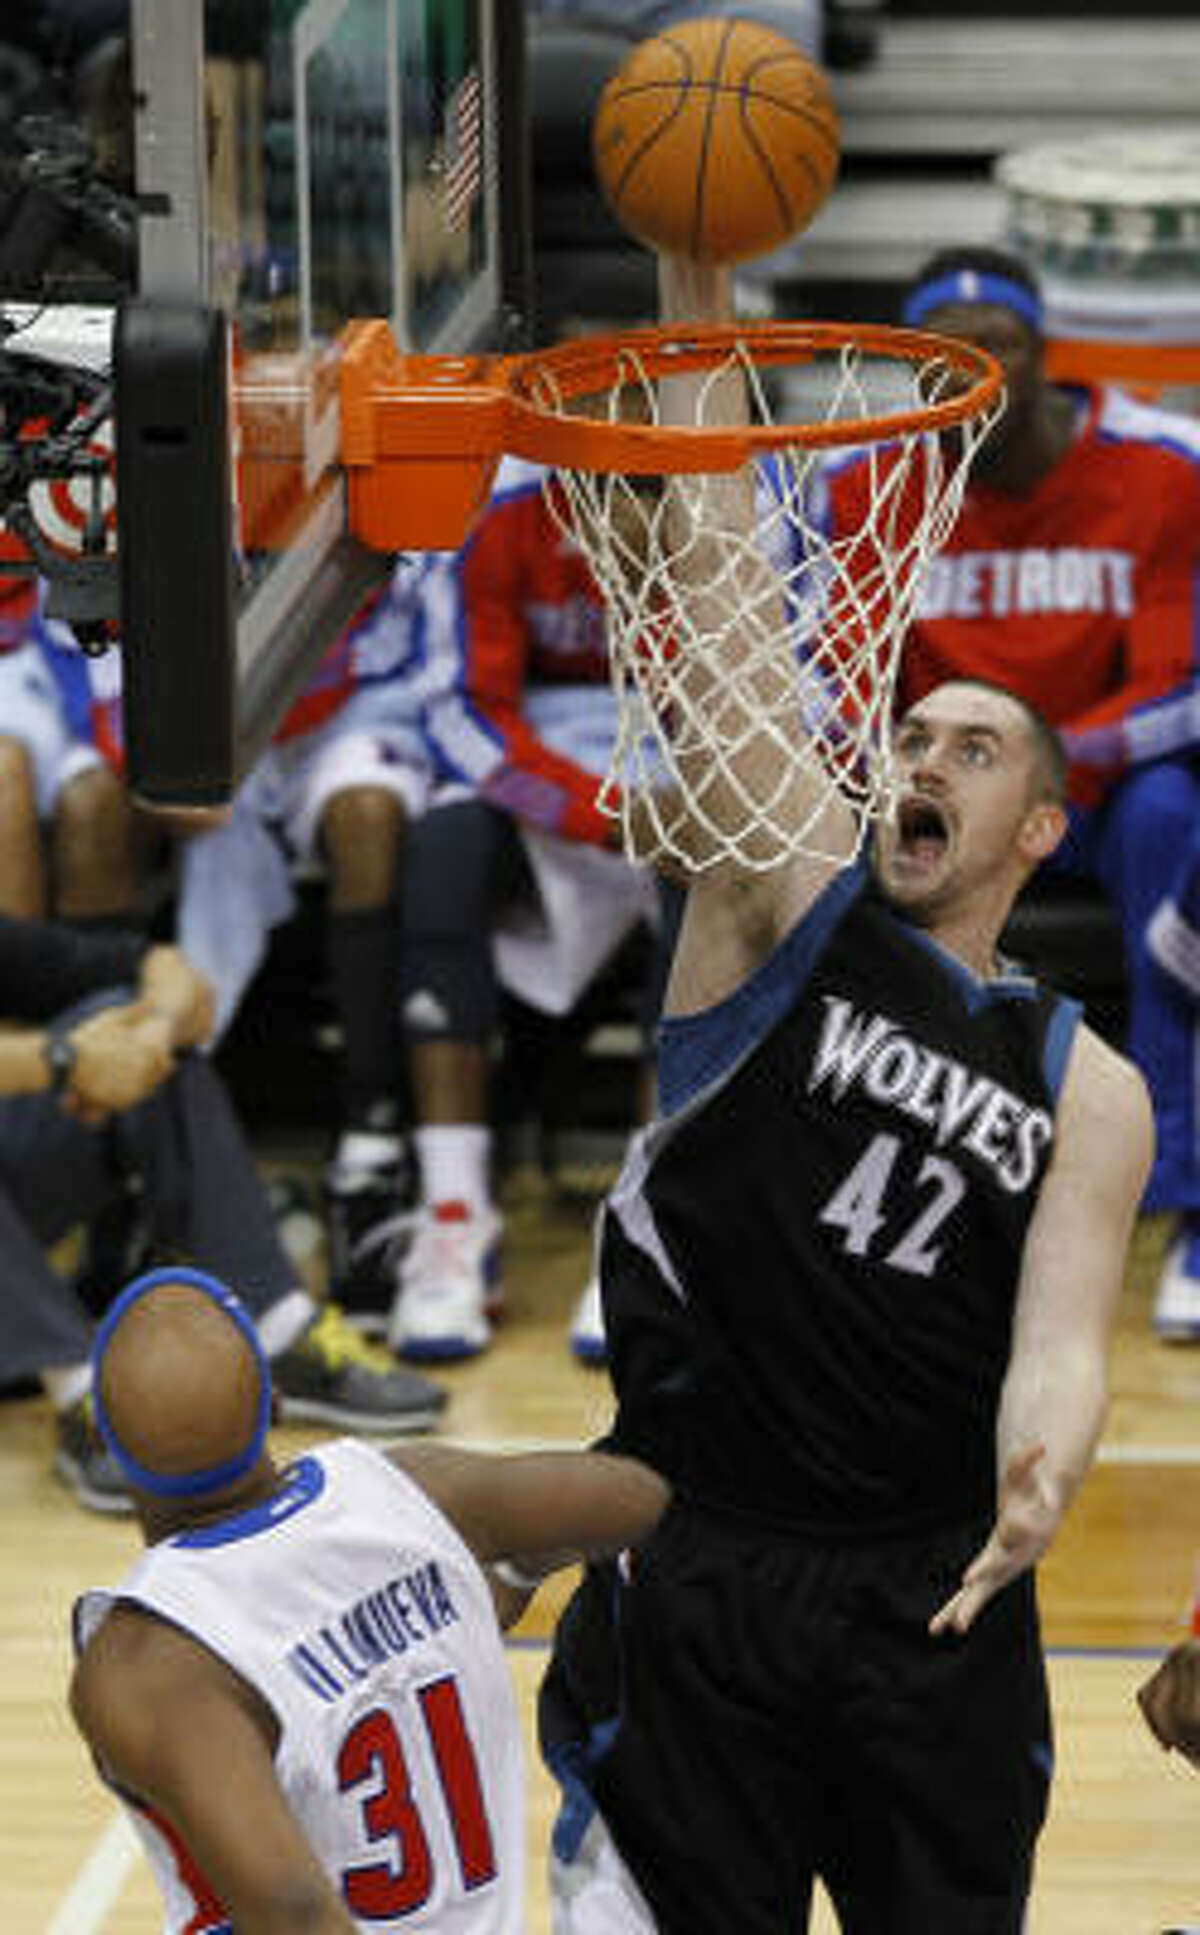 MOST IMPROVED Kevin Love, Minnesota Timberwolves Timberwolves double-double machine put up numbers unseen since Moses Malone.